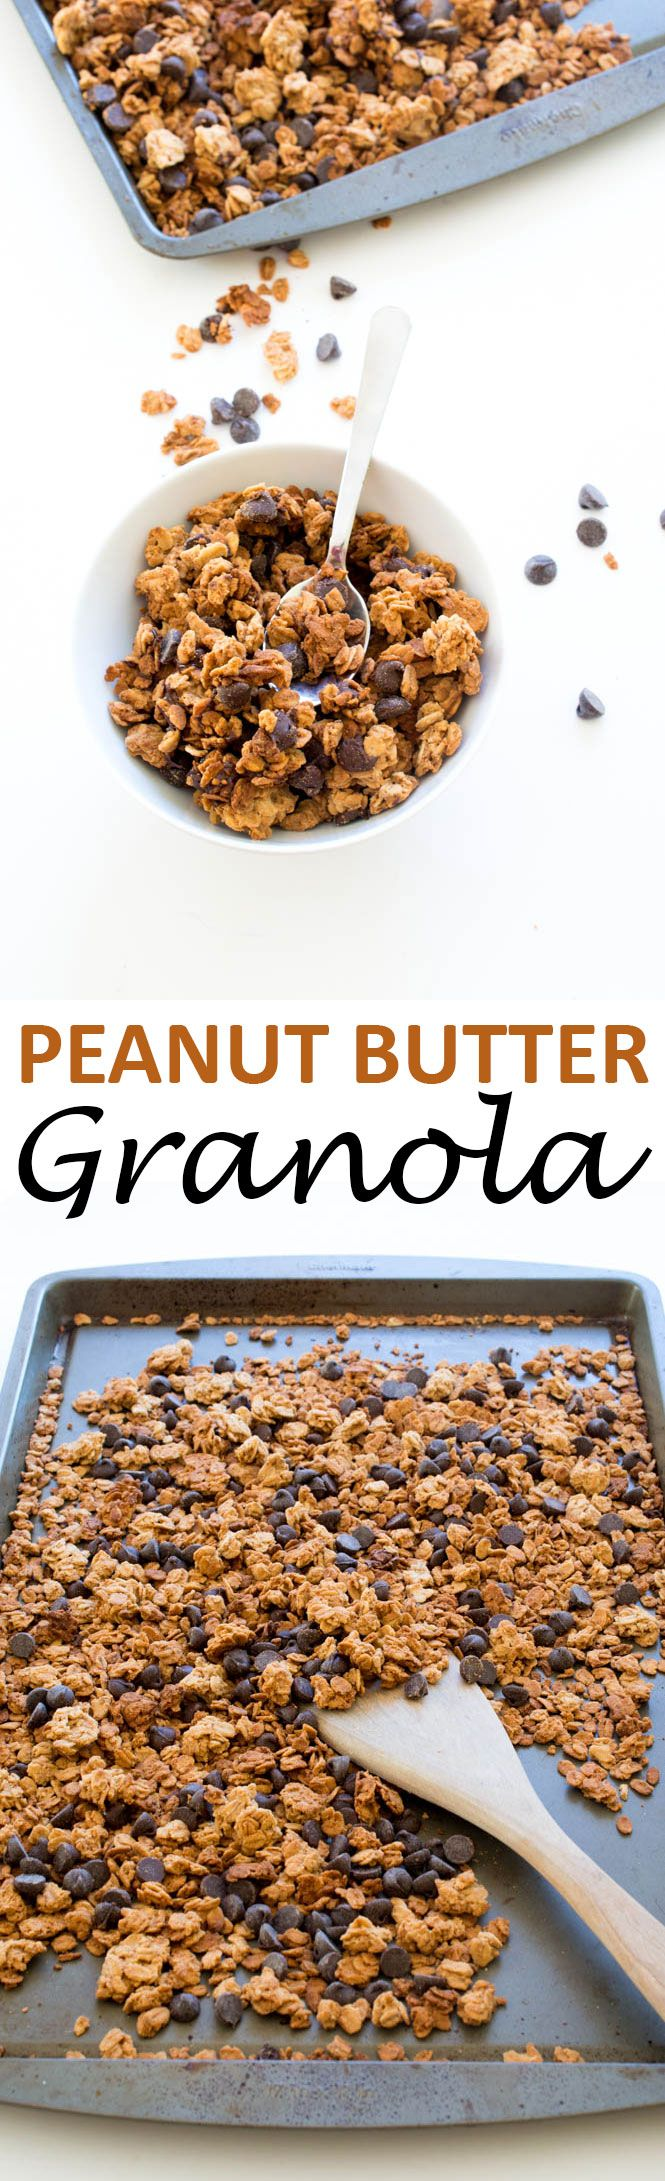 Peanut Butter Chocolate Chip Granola. Honey, oats, chocolate chips, and peanut butter.